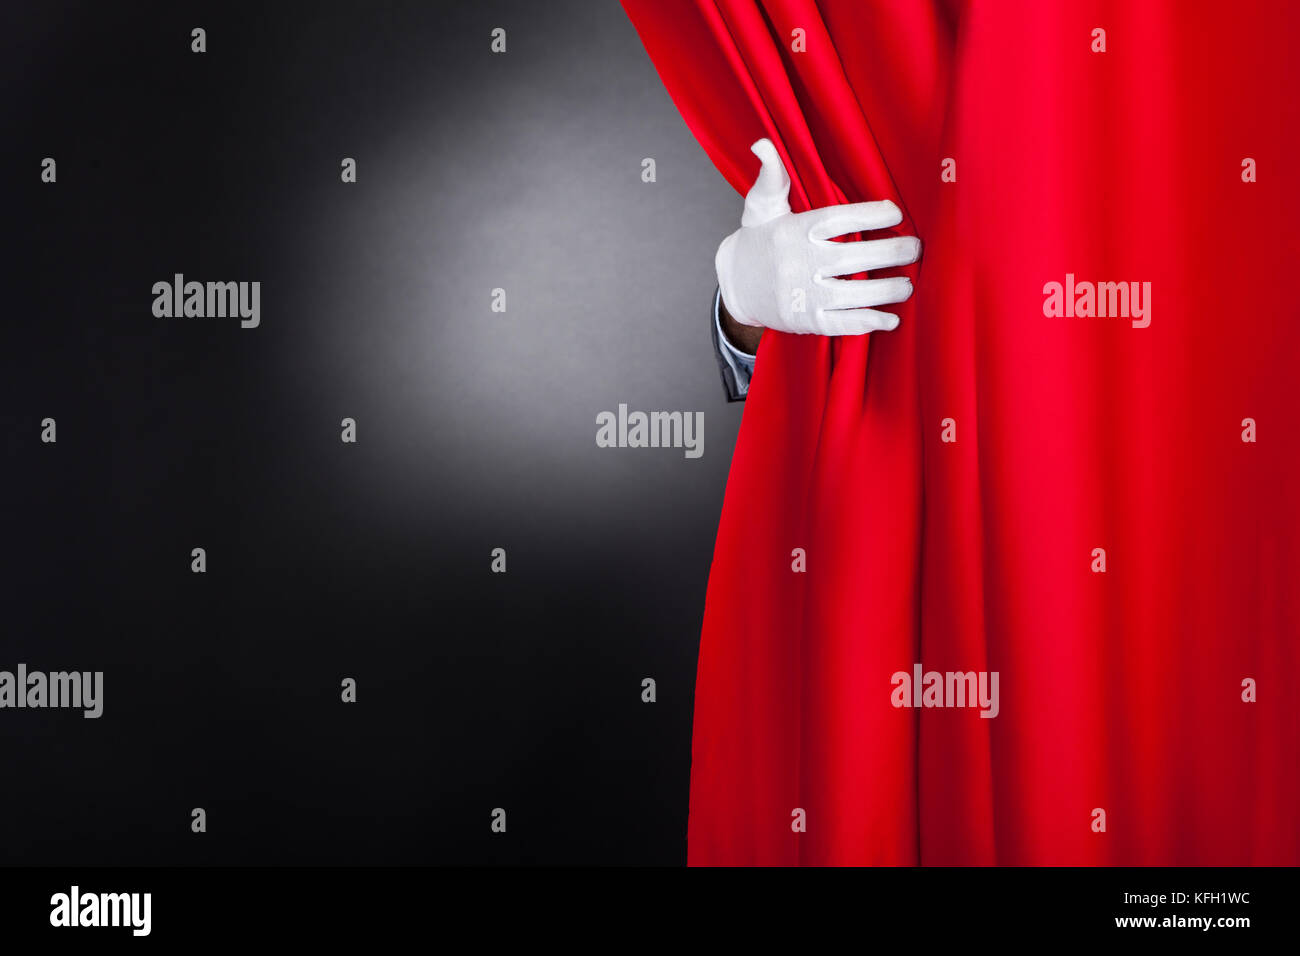 Cropped image of magician opening red stage curtain - Stock Image